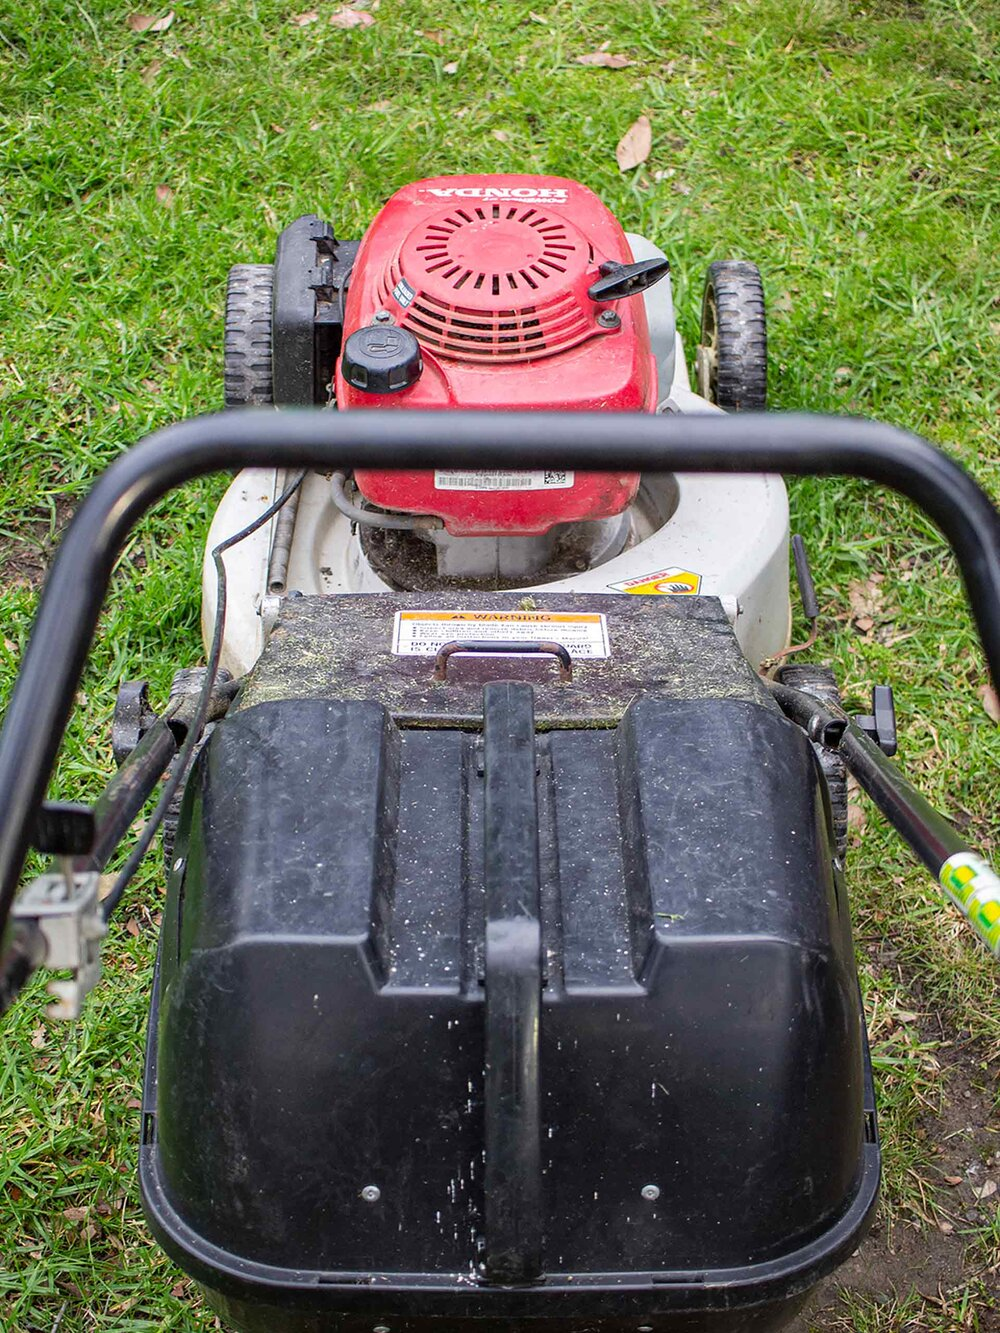 A Honda catching mower. Image via Plants Grow Here.